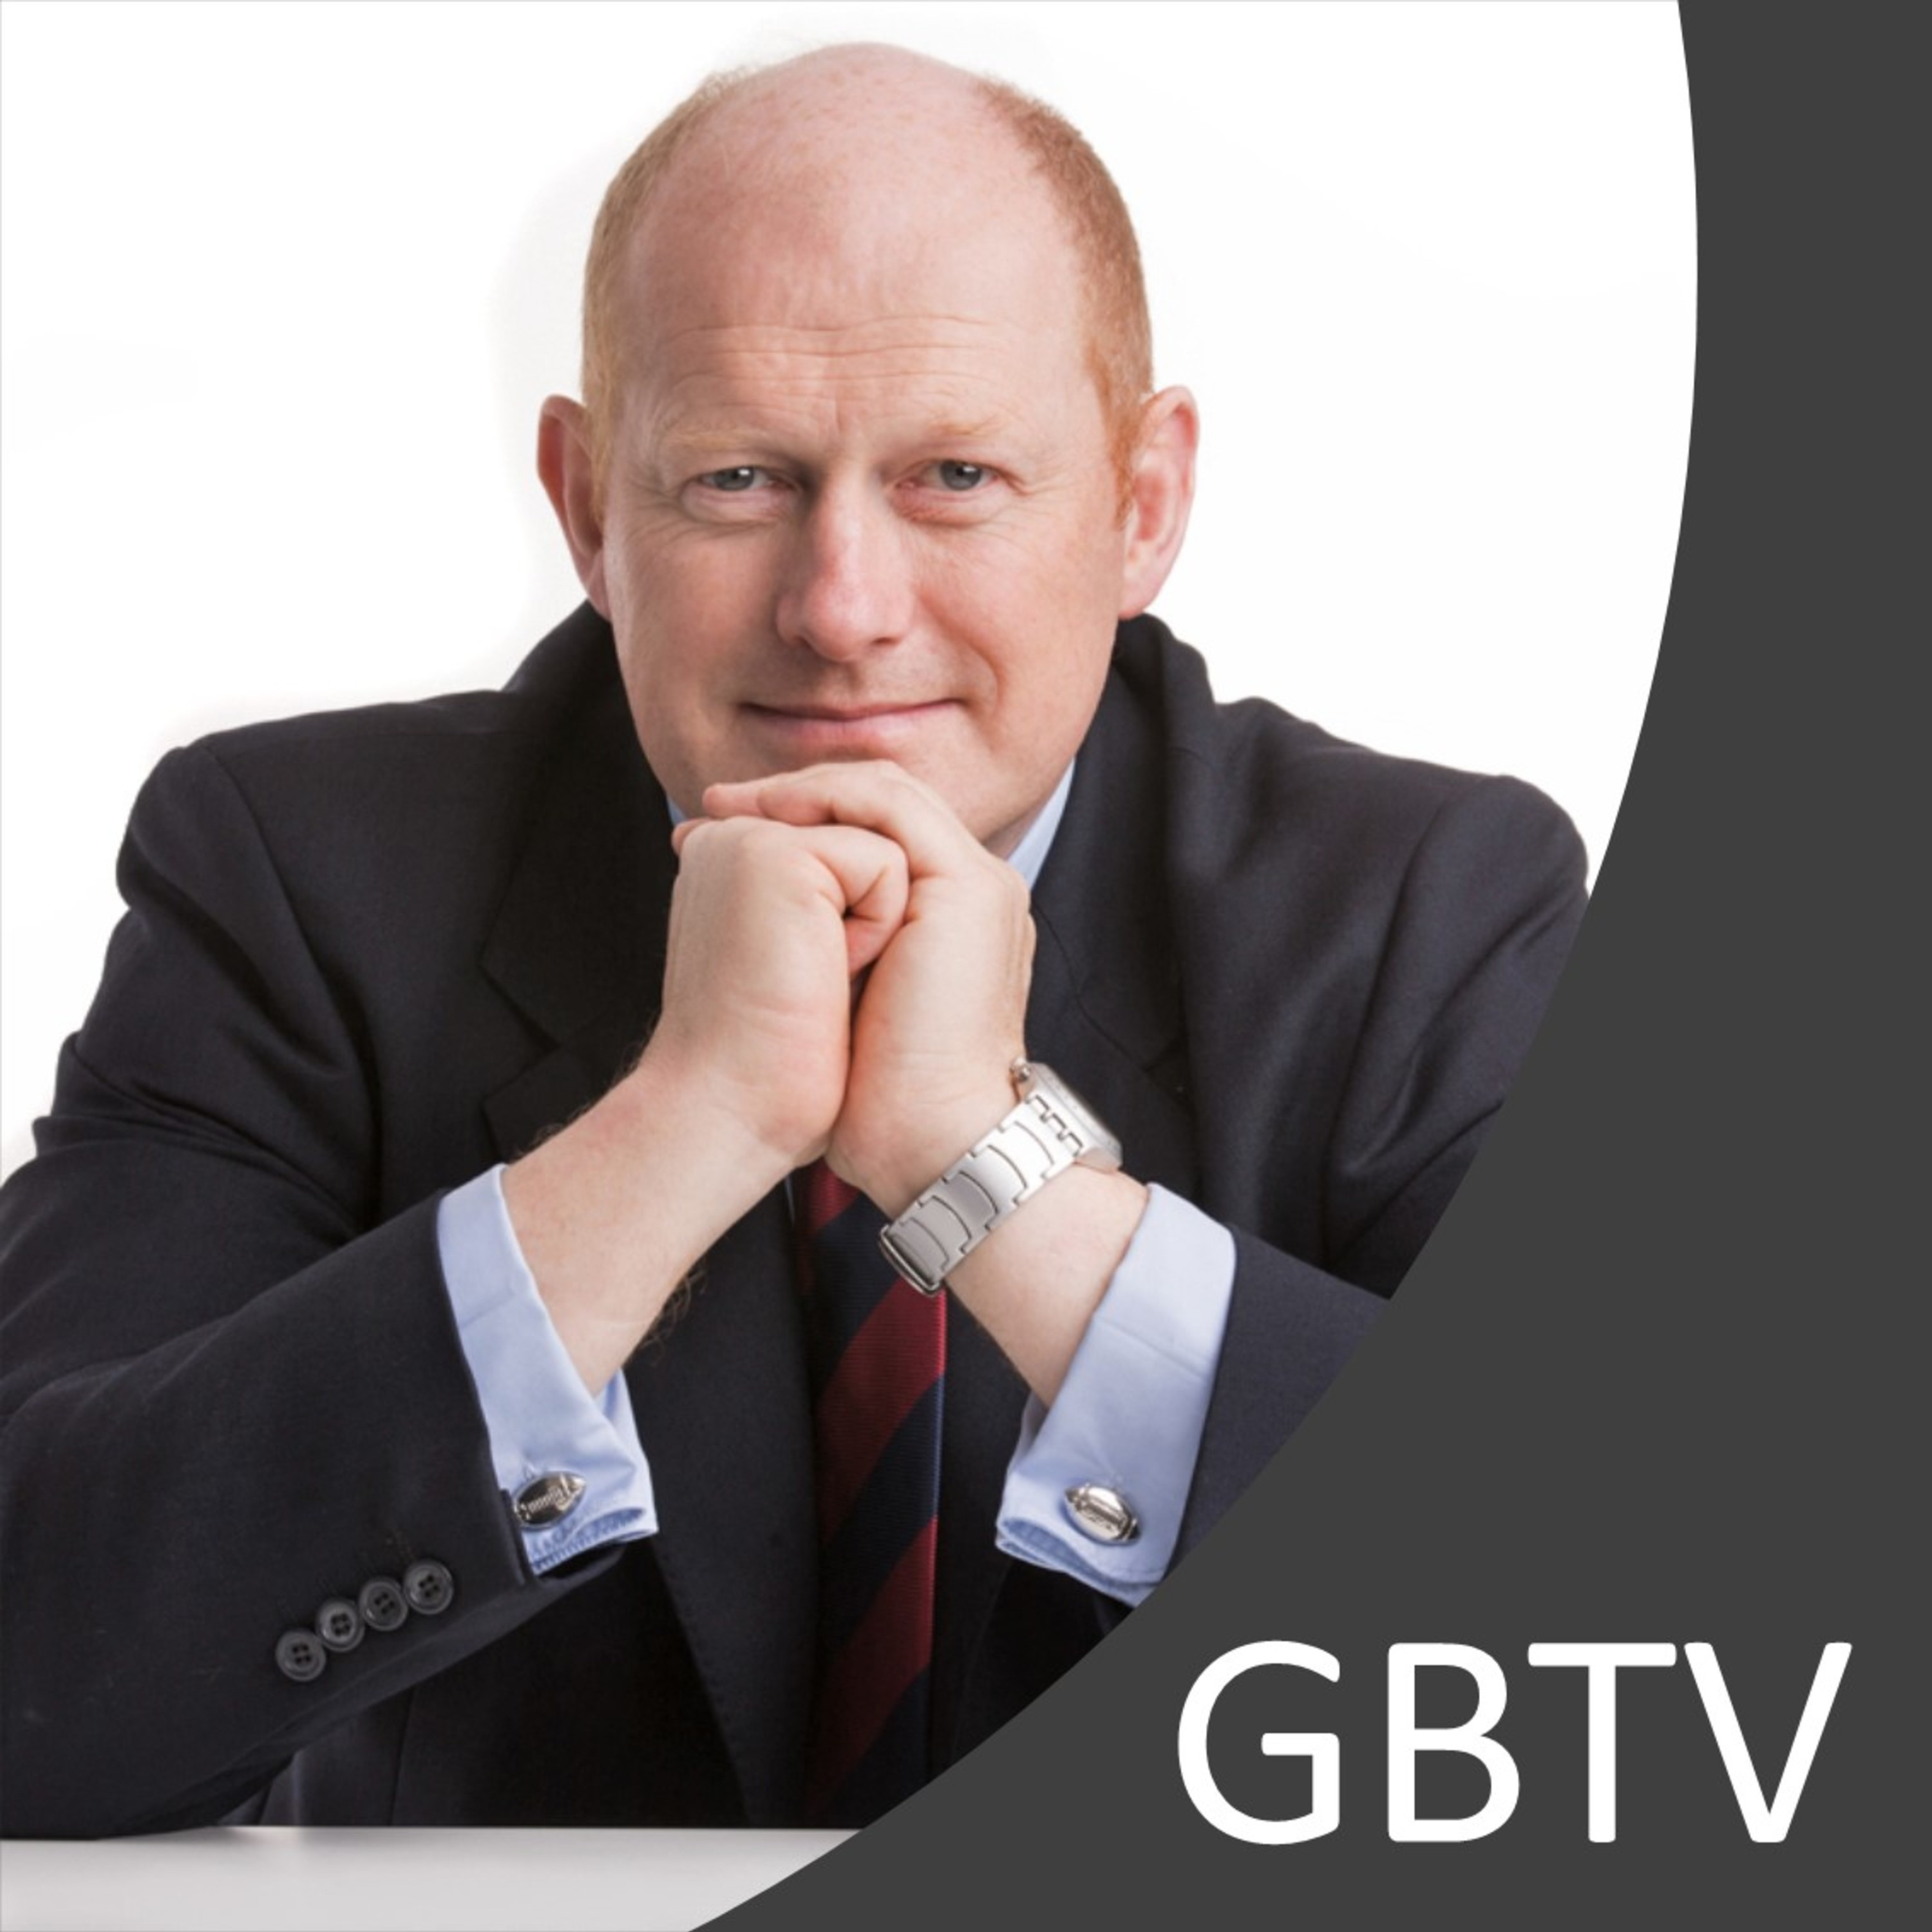 GBTV Podcast Episode 8 - What happens after the deal?